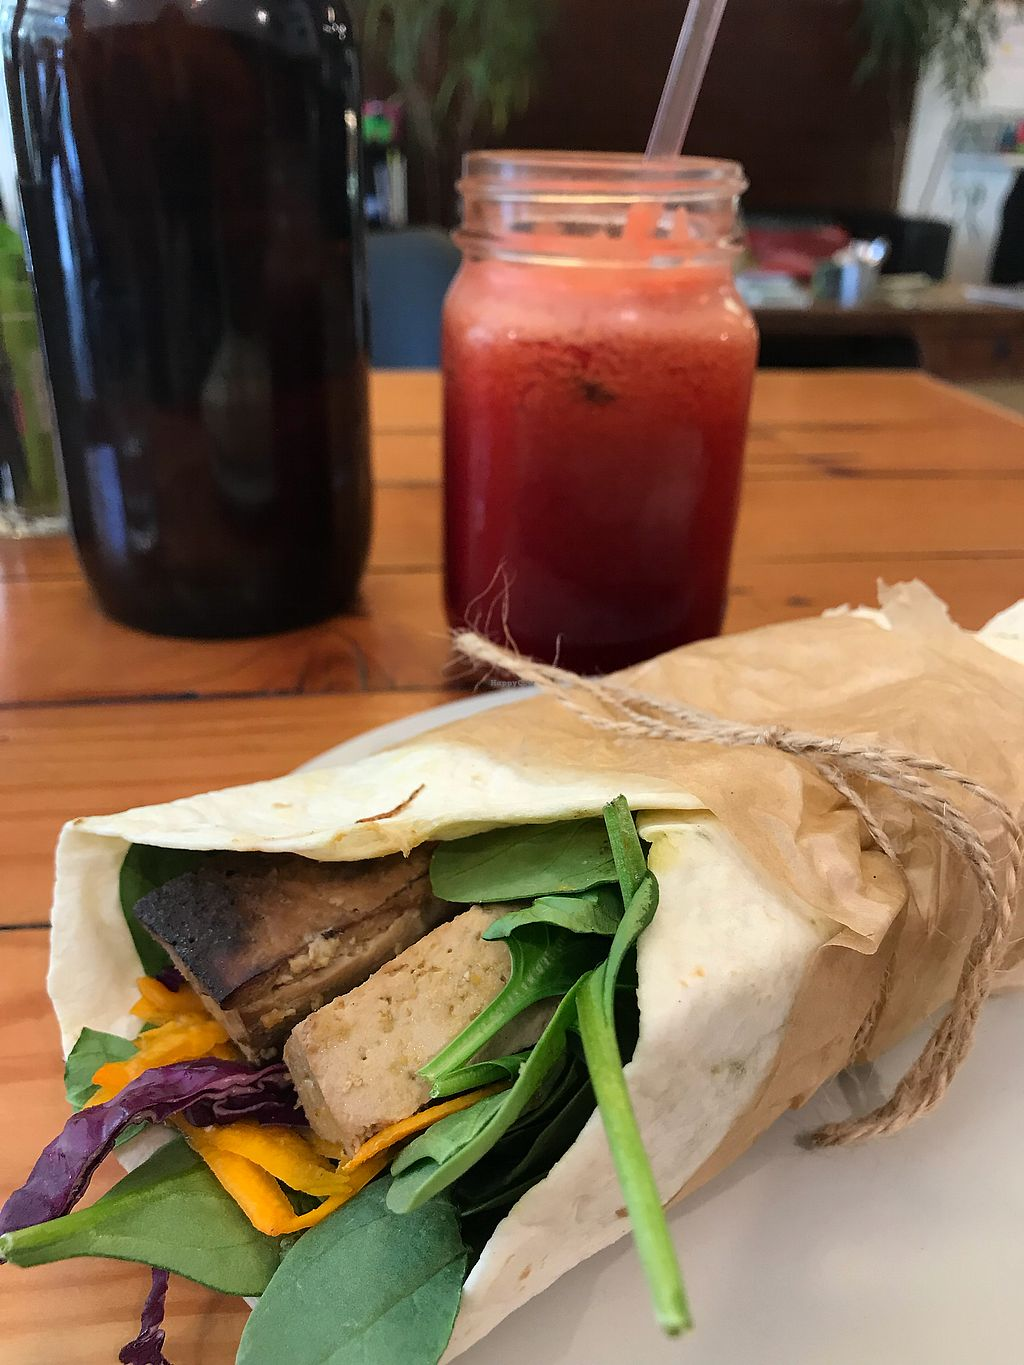 """Photo of Waratah Organics  by <a href=""""/members/profile/InHerImagePhoto"""">InHerImagePhoto</a> <br/>Teriyaki wrap!  <br/> April 11, 2018  - <a href='/contact/abuse/image/55802/383642'>Report</a>"""